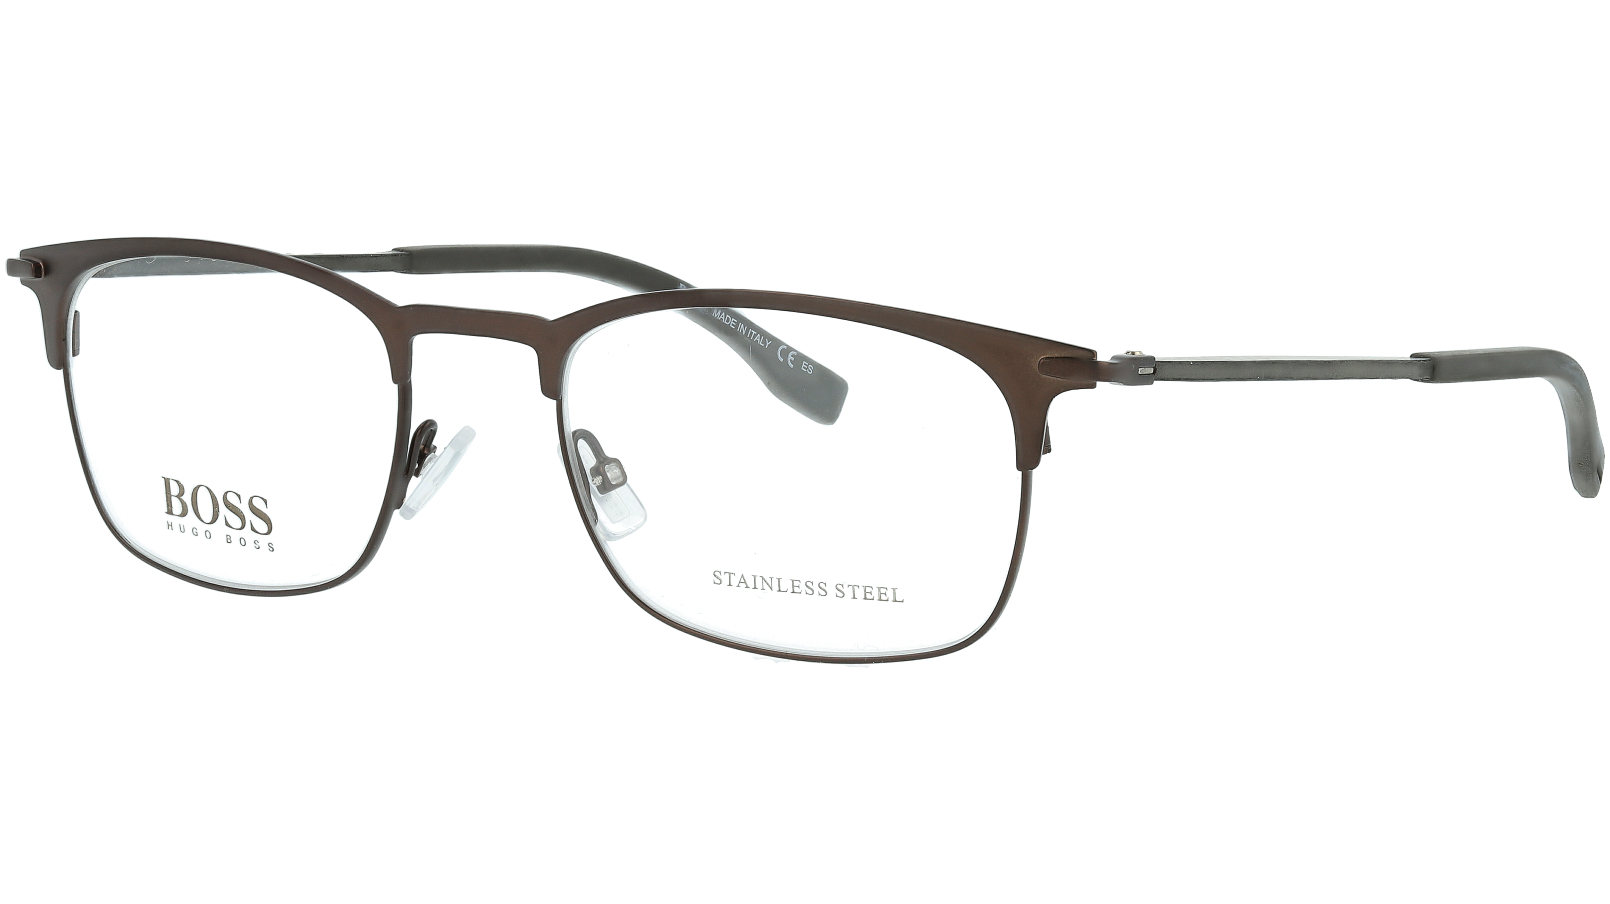 HUGO BOSS BOSS1018 4IN 52 MATT Glasses